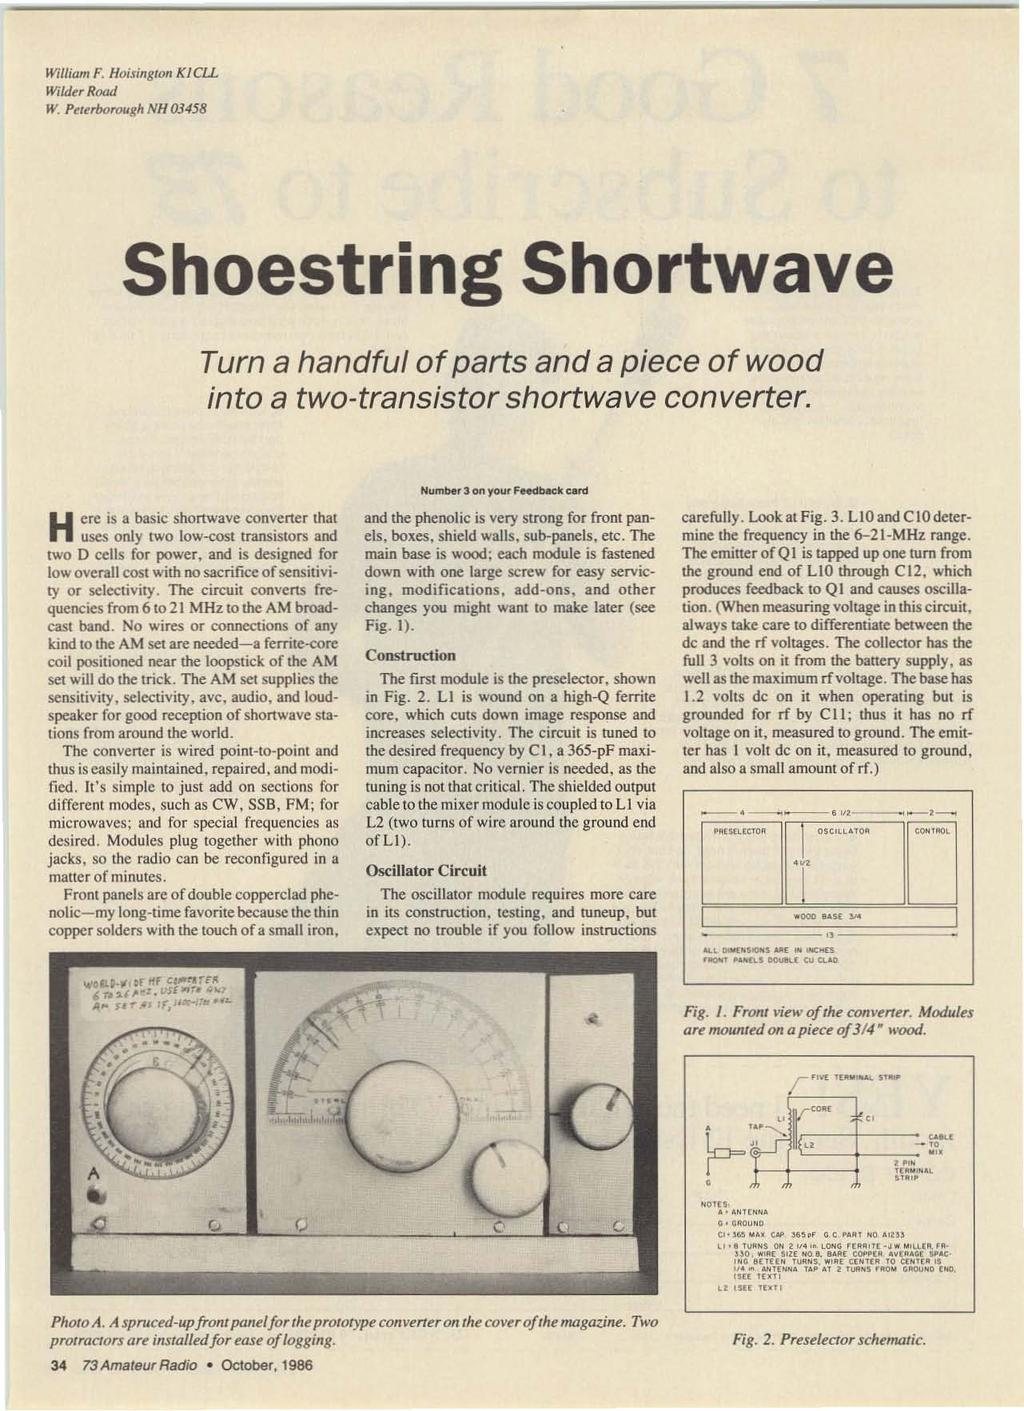 Shoesl Ri N Shortwave Remember When Rigs Were Built O Pine Bases Schematics Of Delabs Relay Driver Electromagnetic William F Hoiingtoll K1cll Wildtr Road W Peterborough Nh 03458 Shoestring